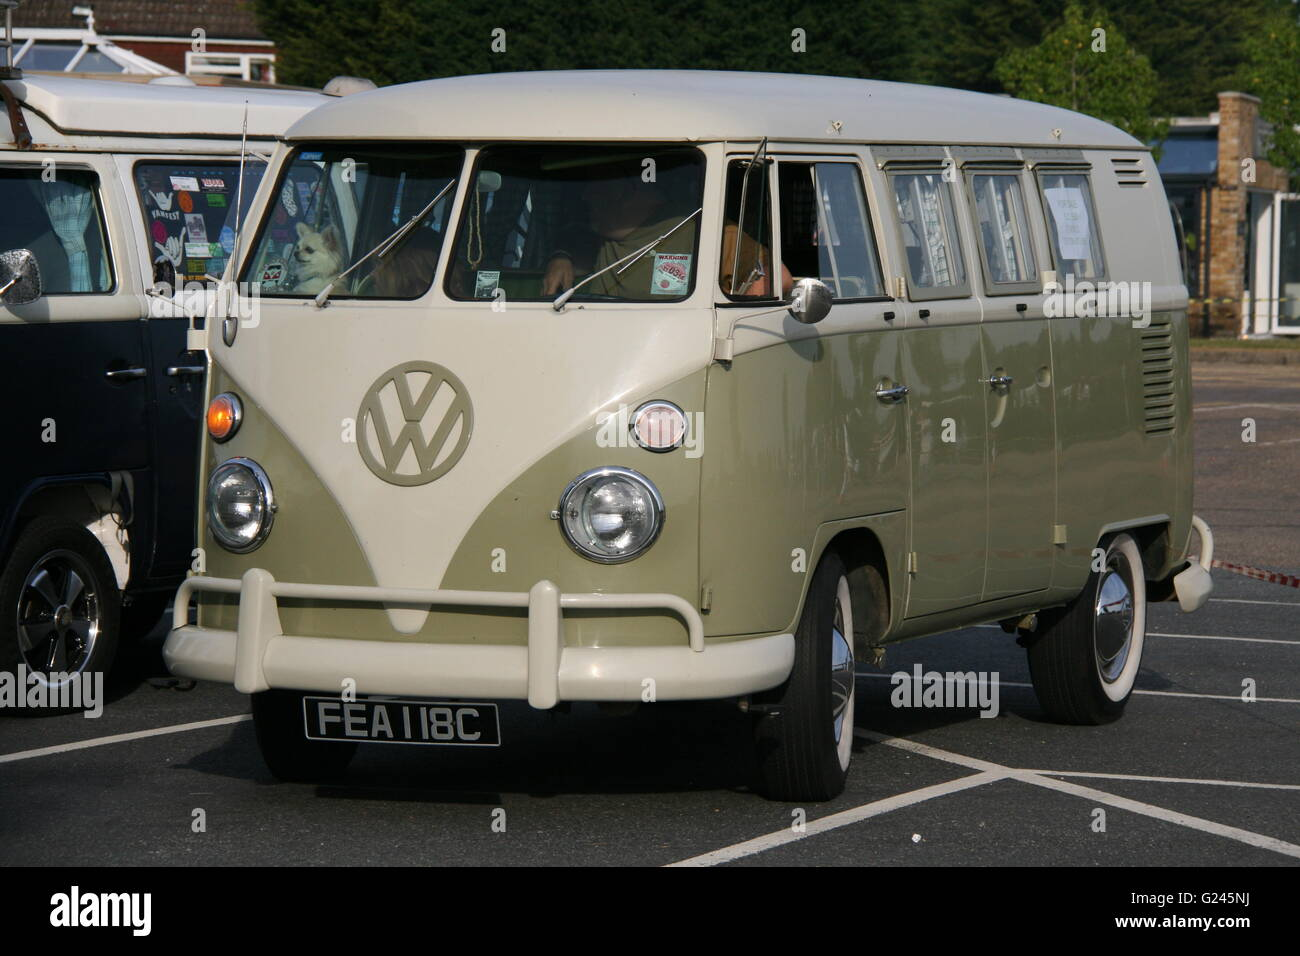 A CLASSIC 1960'S VW CAMPER VAN AT A VINTAGE VEHICLE RALLY - Stock Image